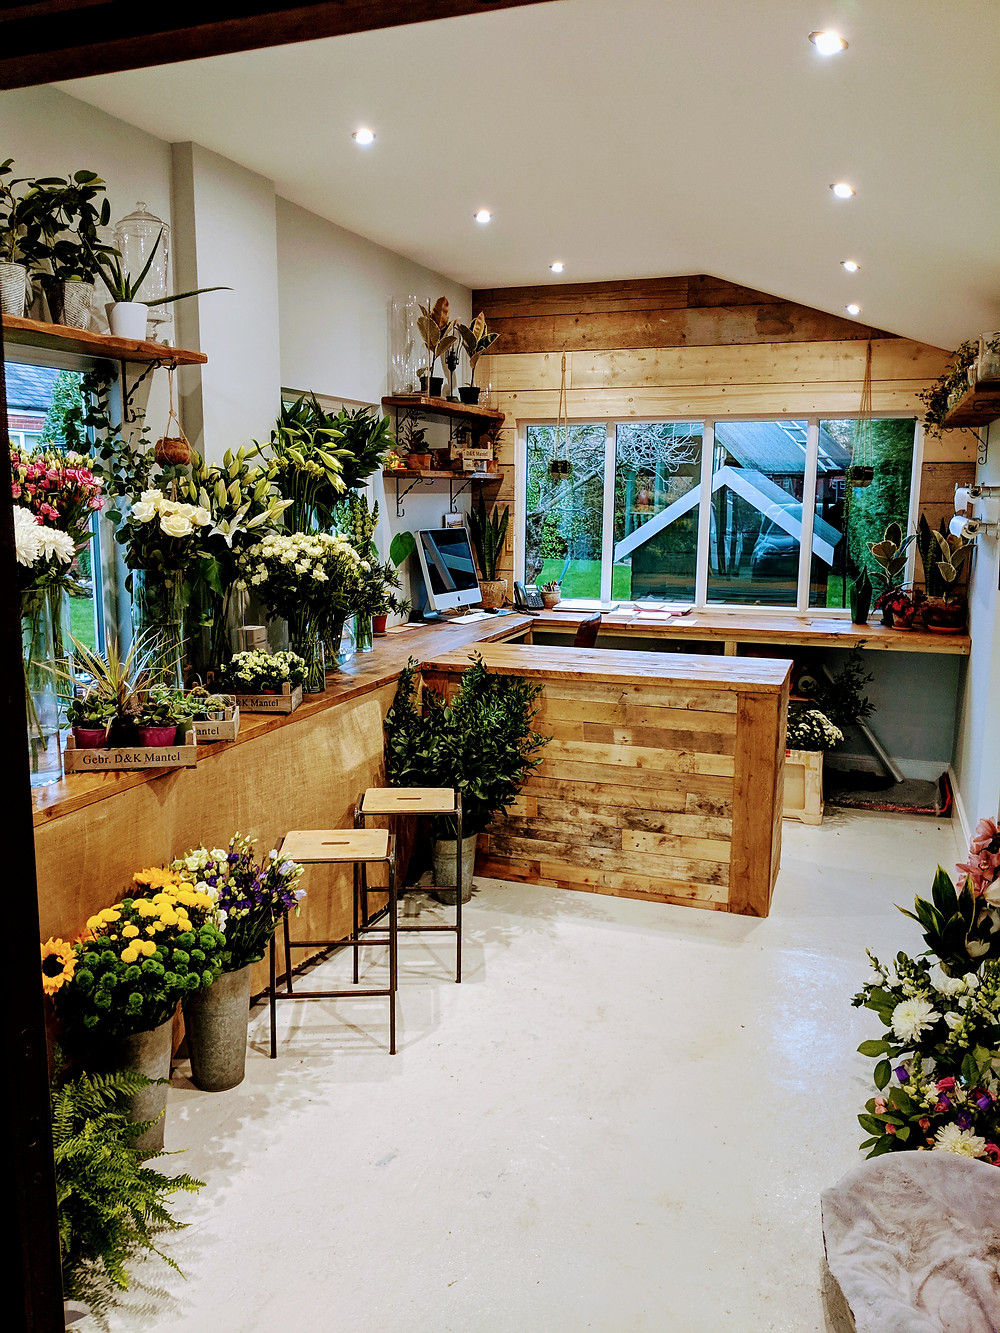 Flower studio with wood panelling, botanical shelving and vases of flowers